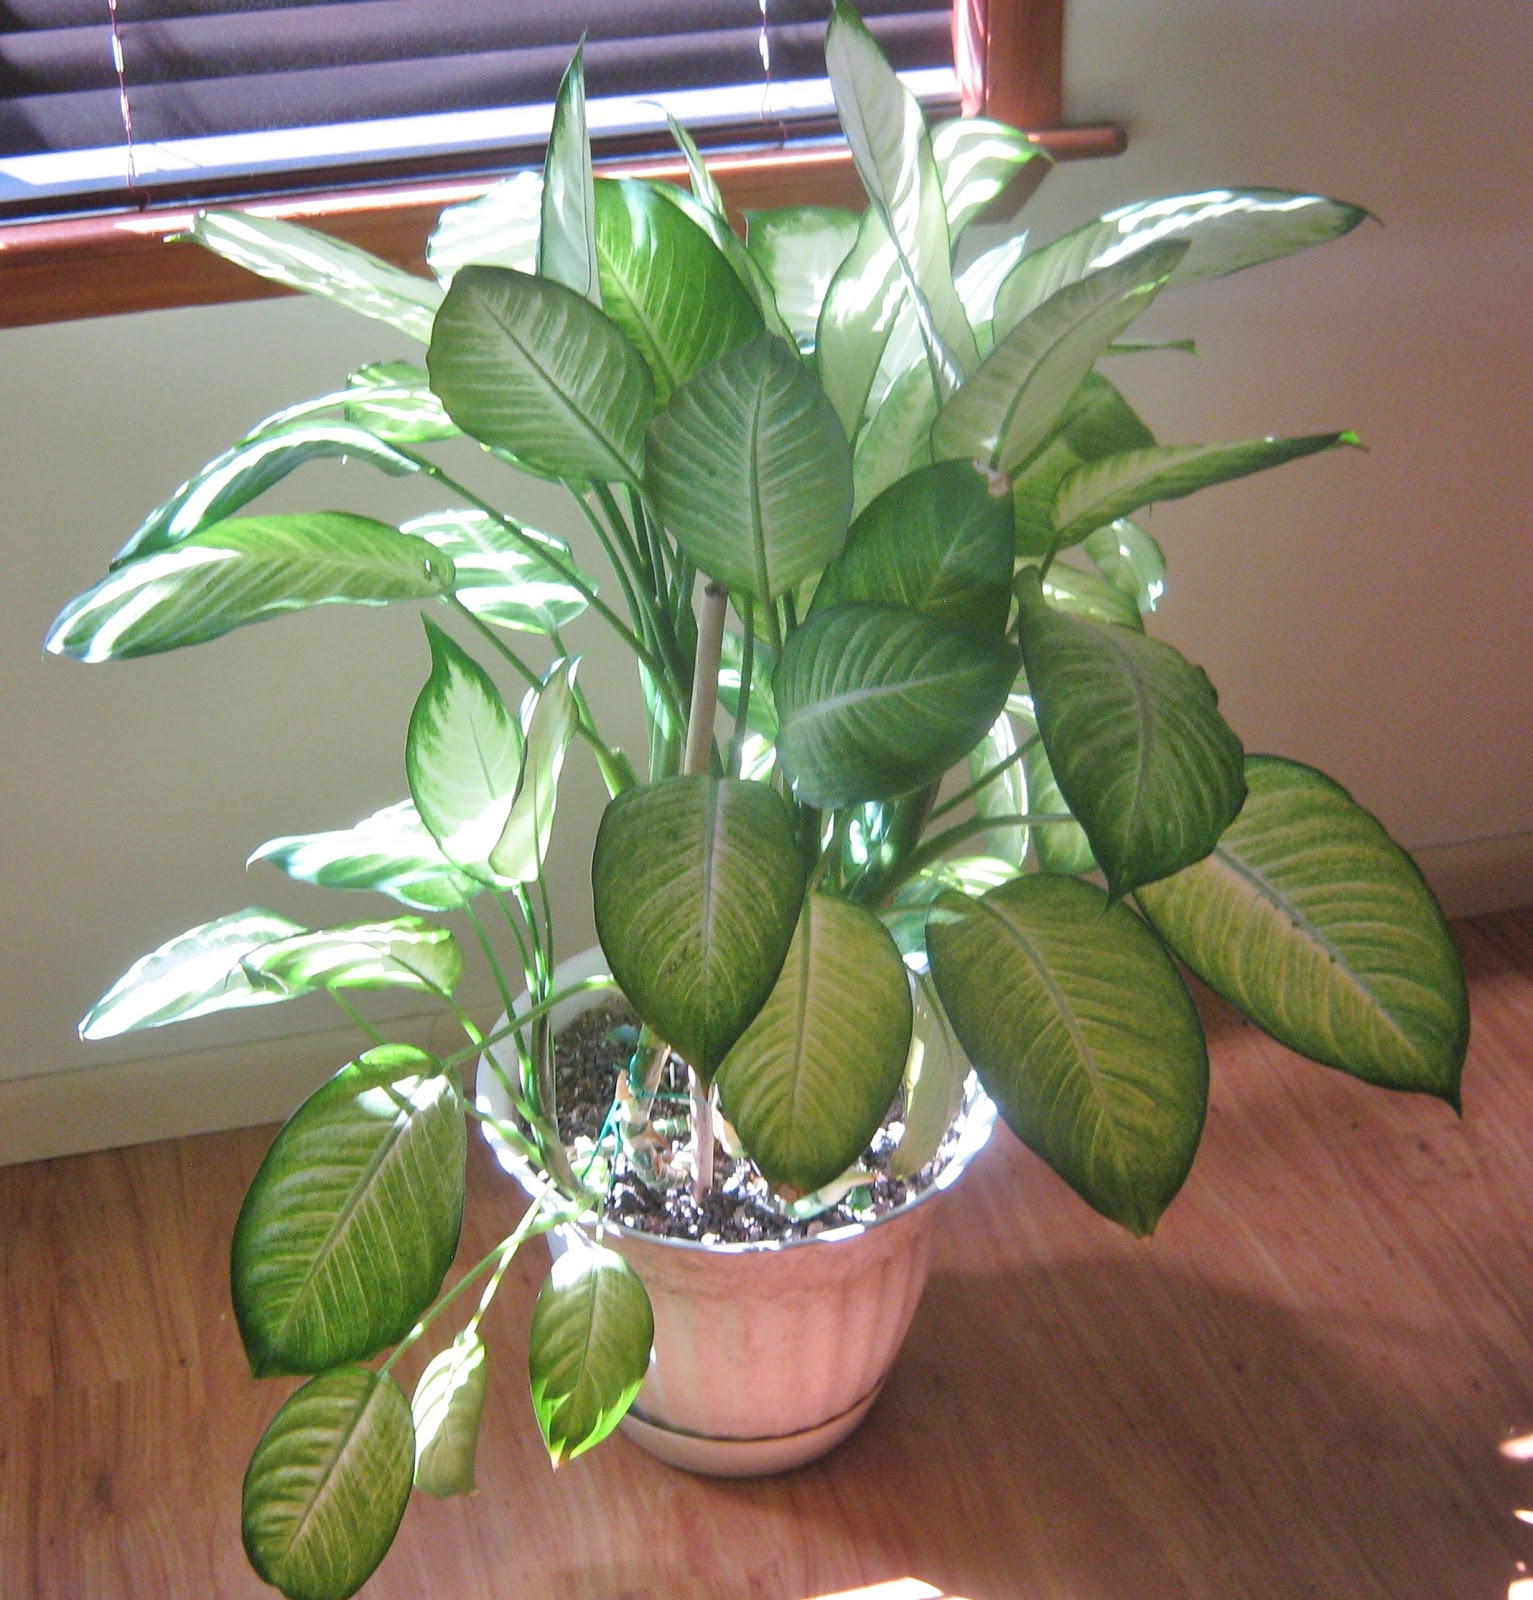 watering house plants - Identifying Common House Plants